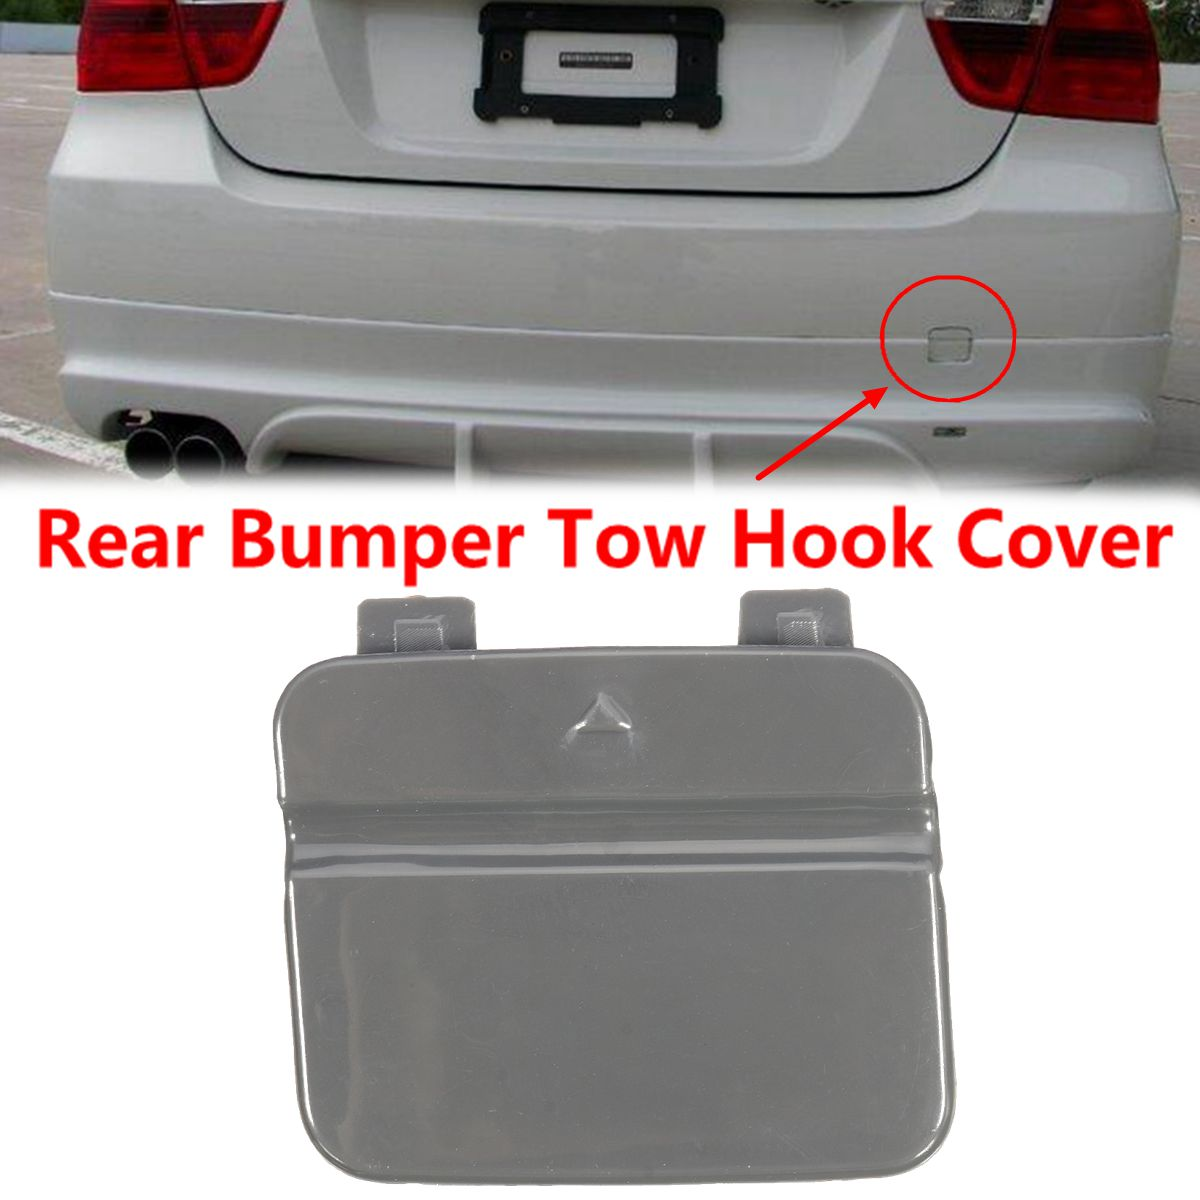 51127202673 Rear Bumper Tow Hook Cover <font><b>Cap</b></font> For <font><b>BMW</b></font> 3-Series <font><b>E90</b></font> E91 328i 335d 335i 316i 318i image